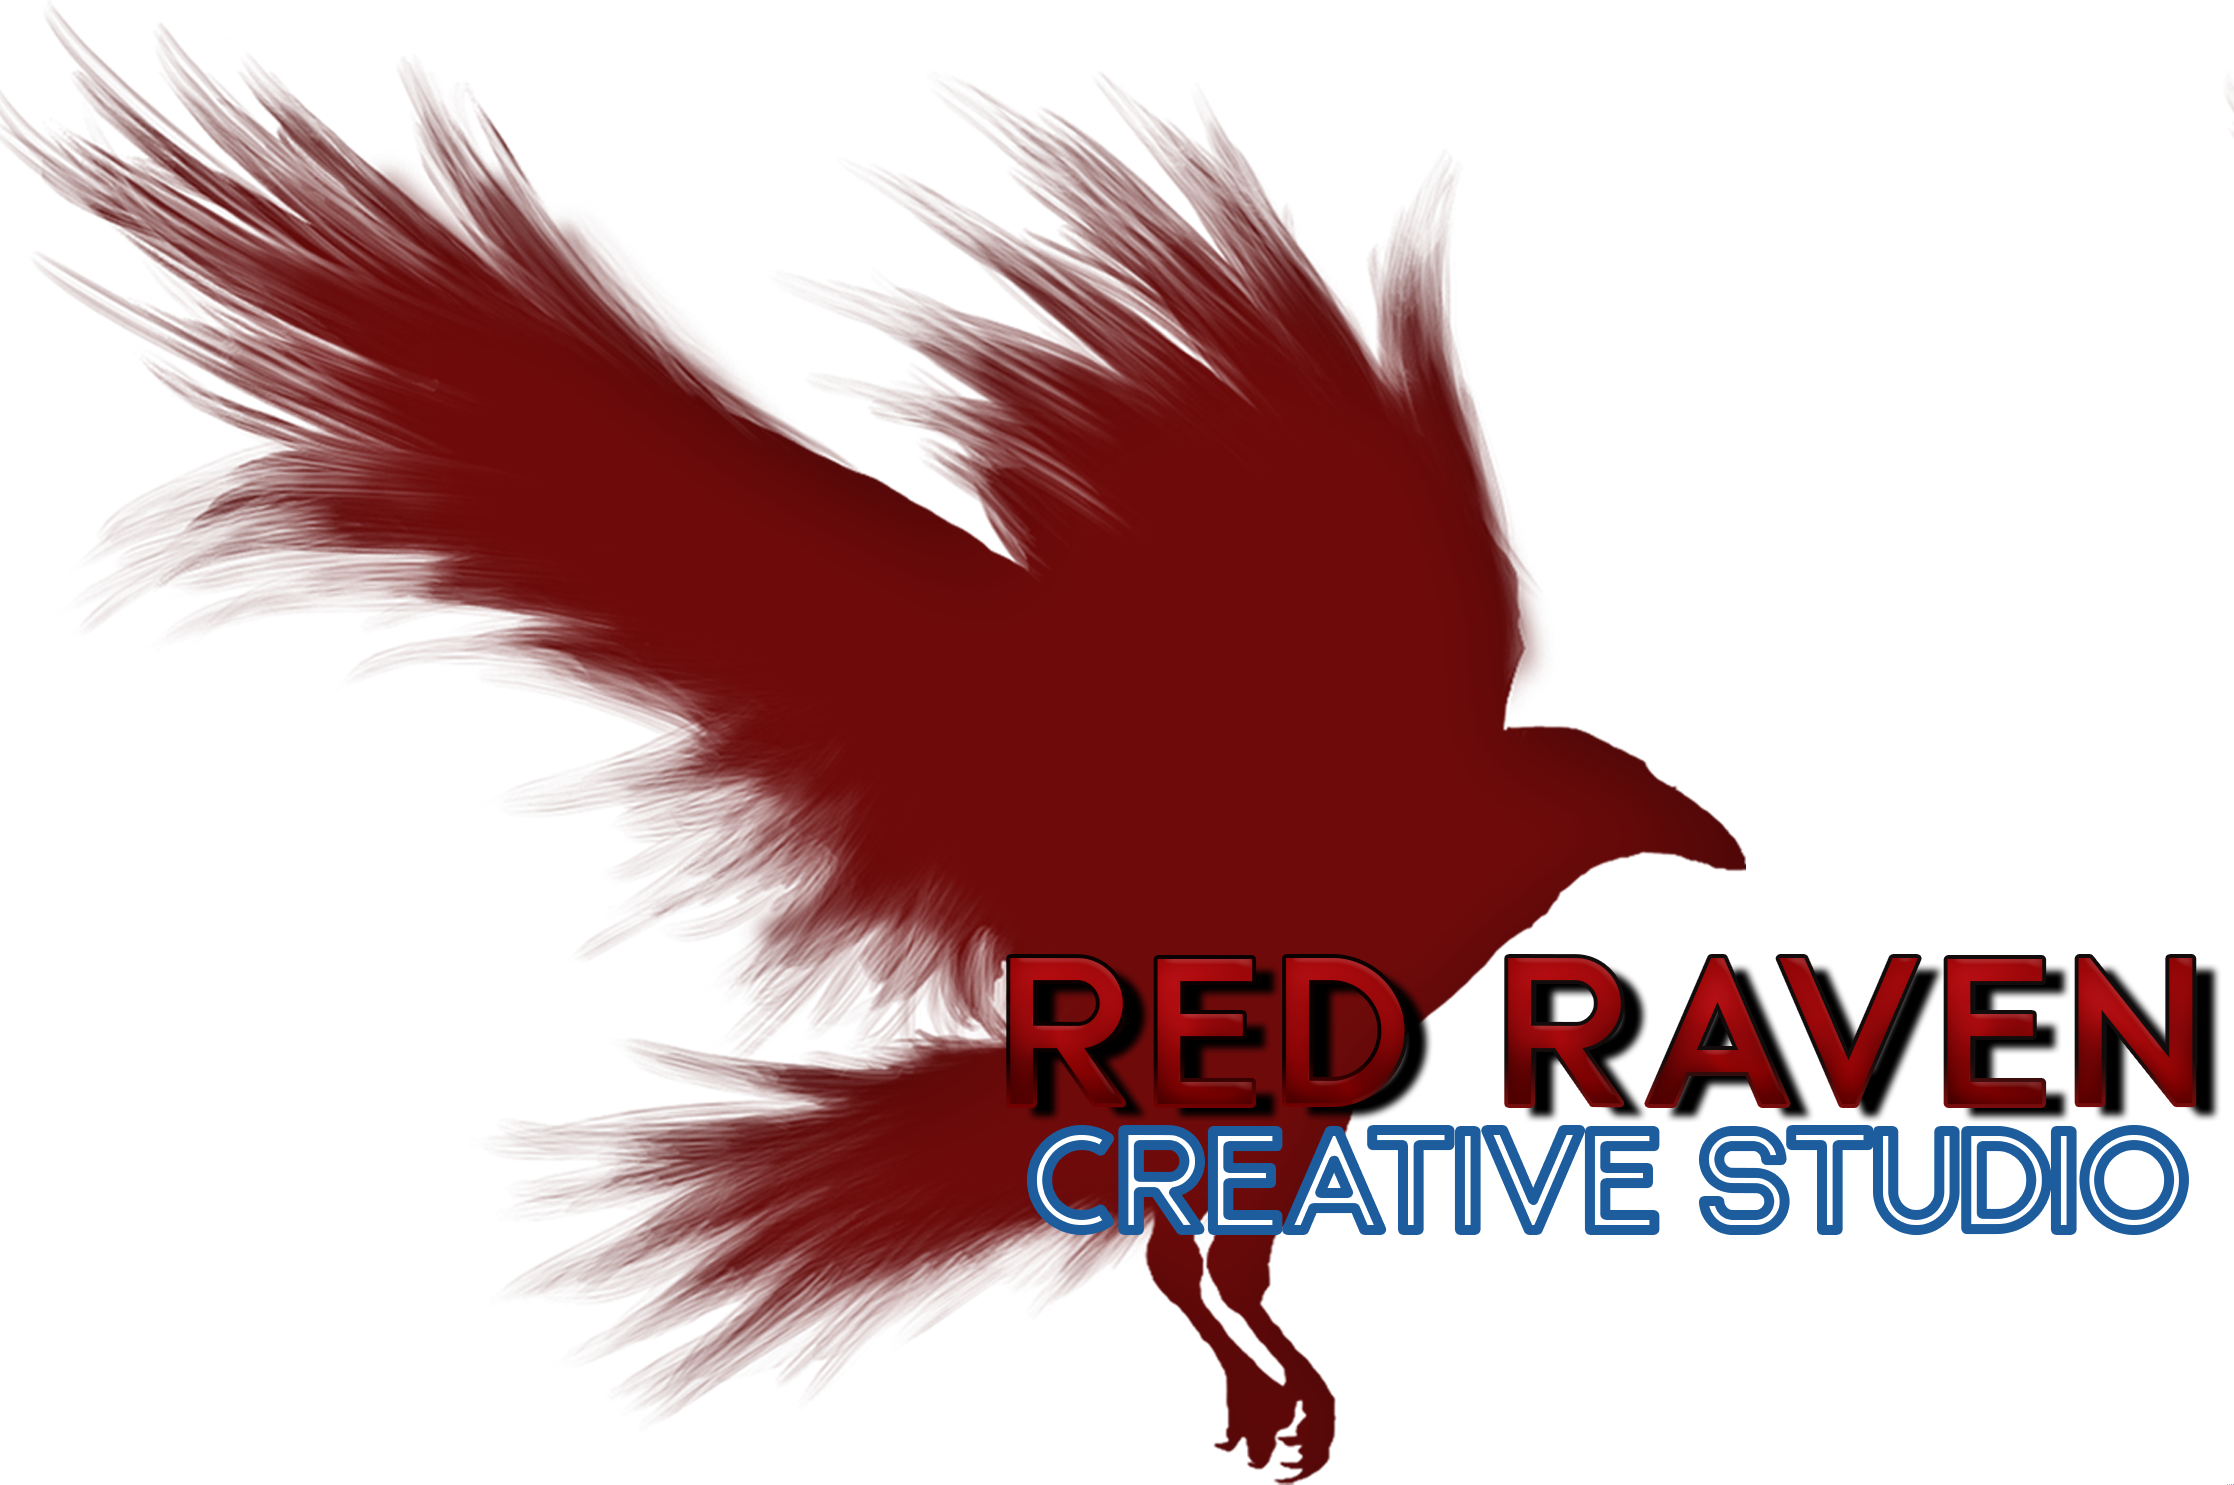 RED RAVE CREATIVE